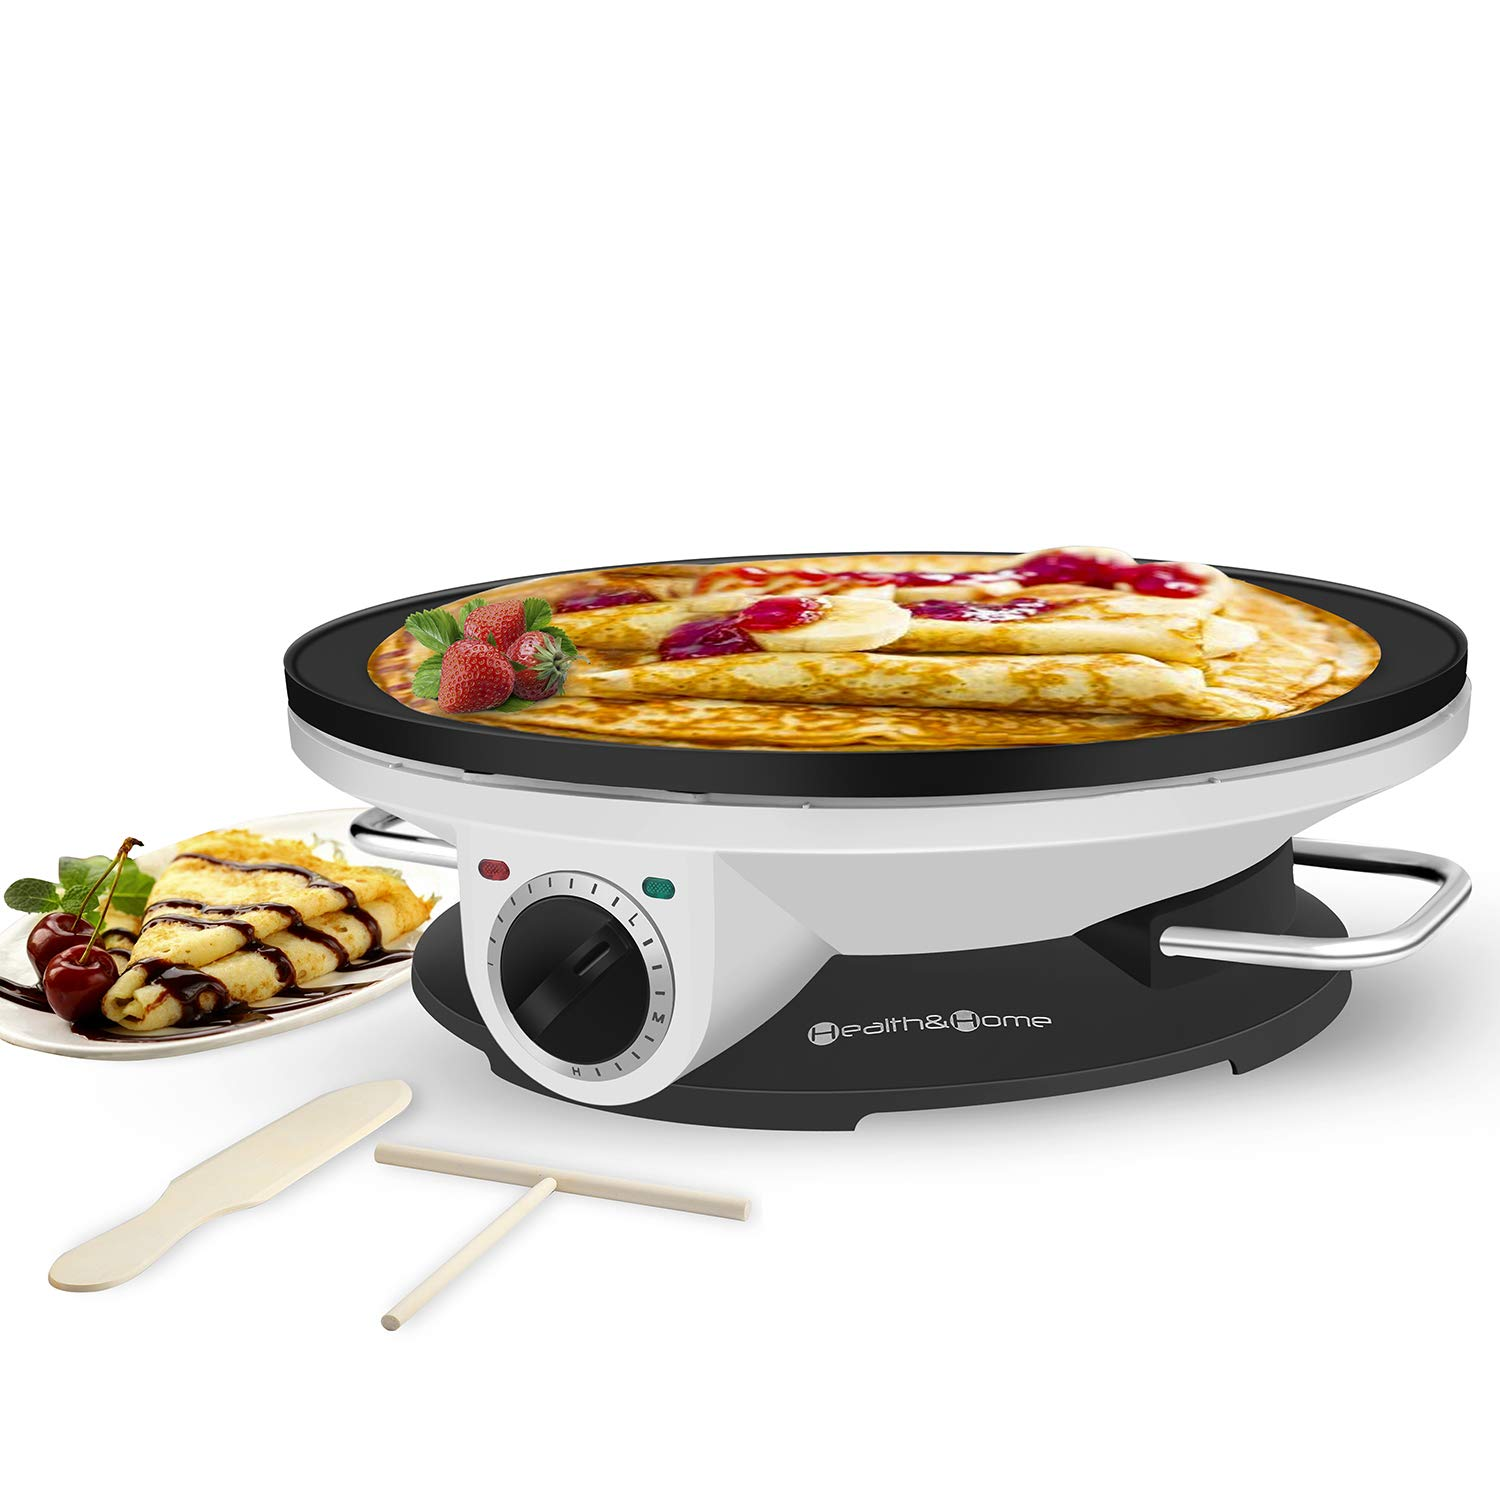 Health and Home Crepe Maker - 13 Inch Crepe Maker & Electric Griddle - Non-stick Pancake Maker by Health and Home